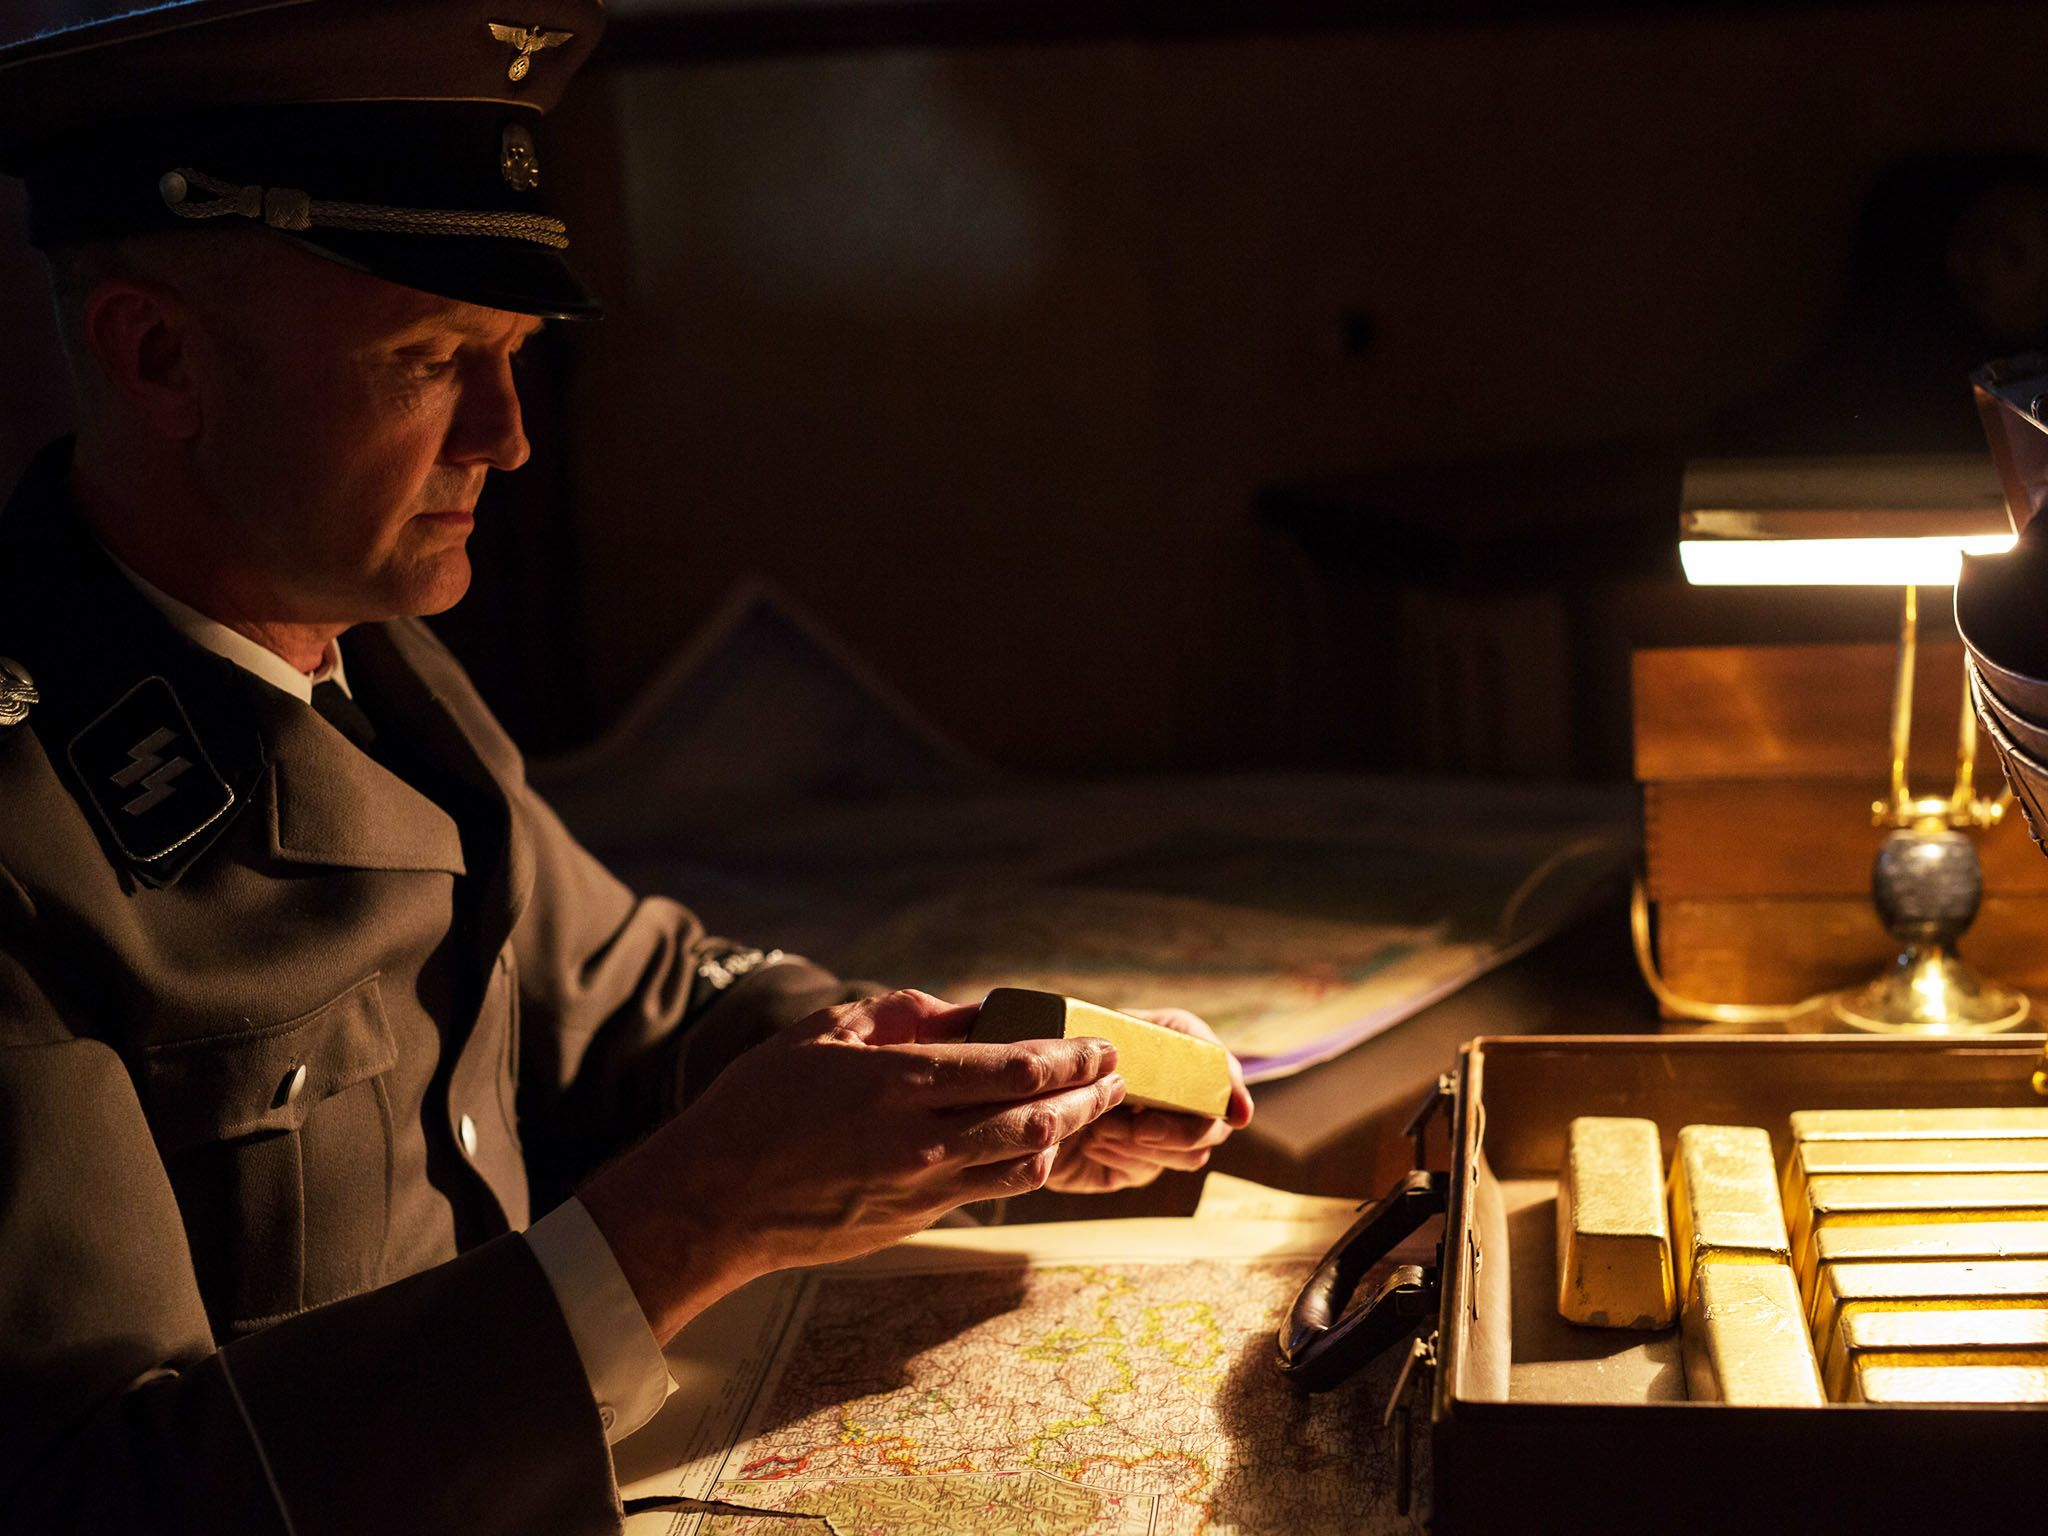 Re-enactment: Eichmann (played by M.E. Lewis)looks at the gold bars given to him by the Munk... [Photo of the day - سپتامبر 2015]